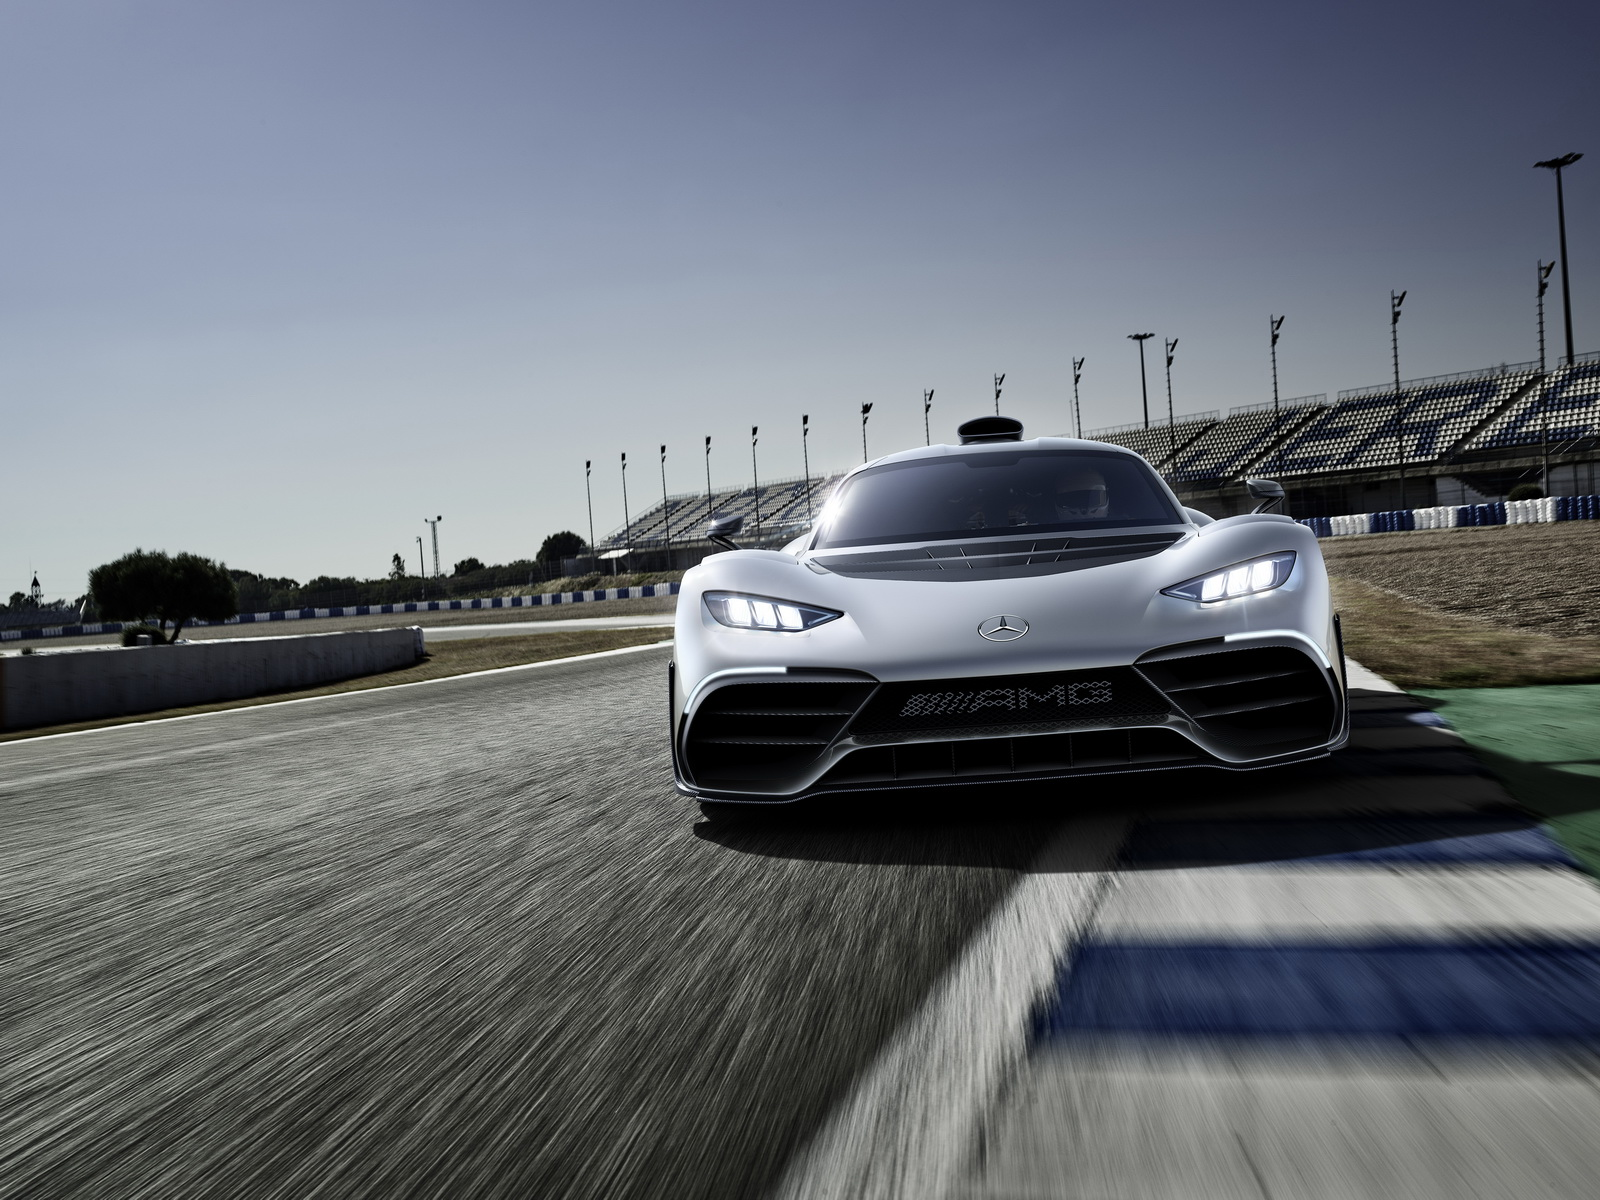 mercedes-amg-project-one-2.jpg